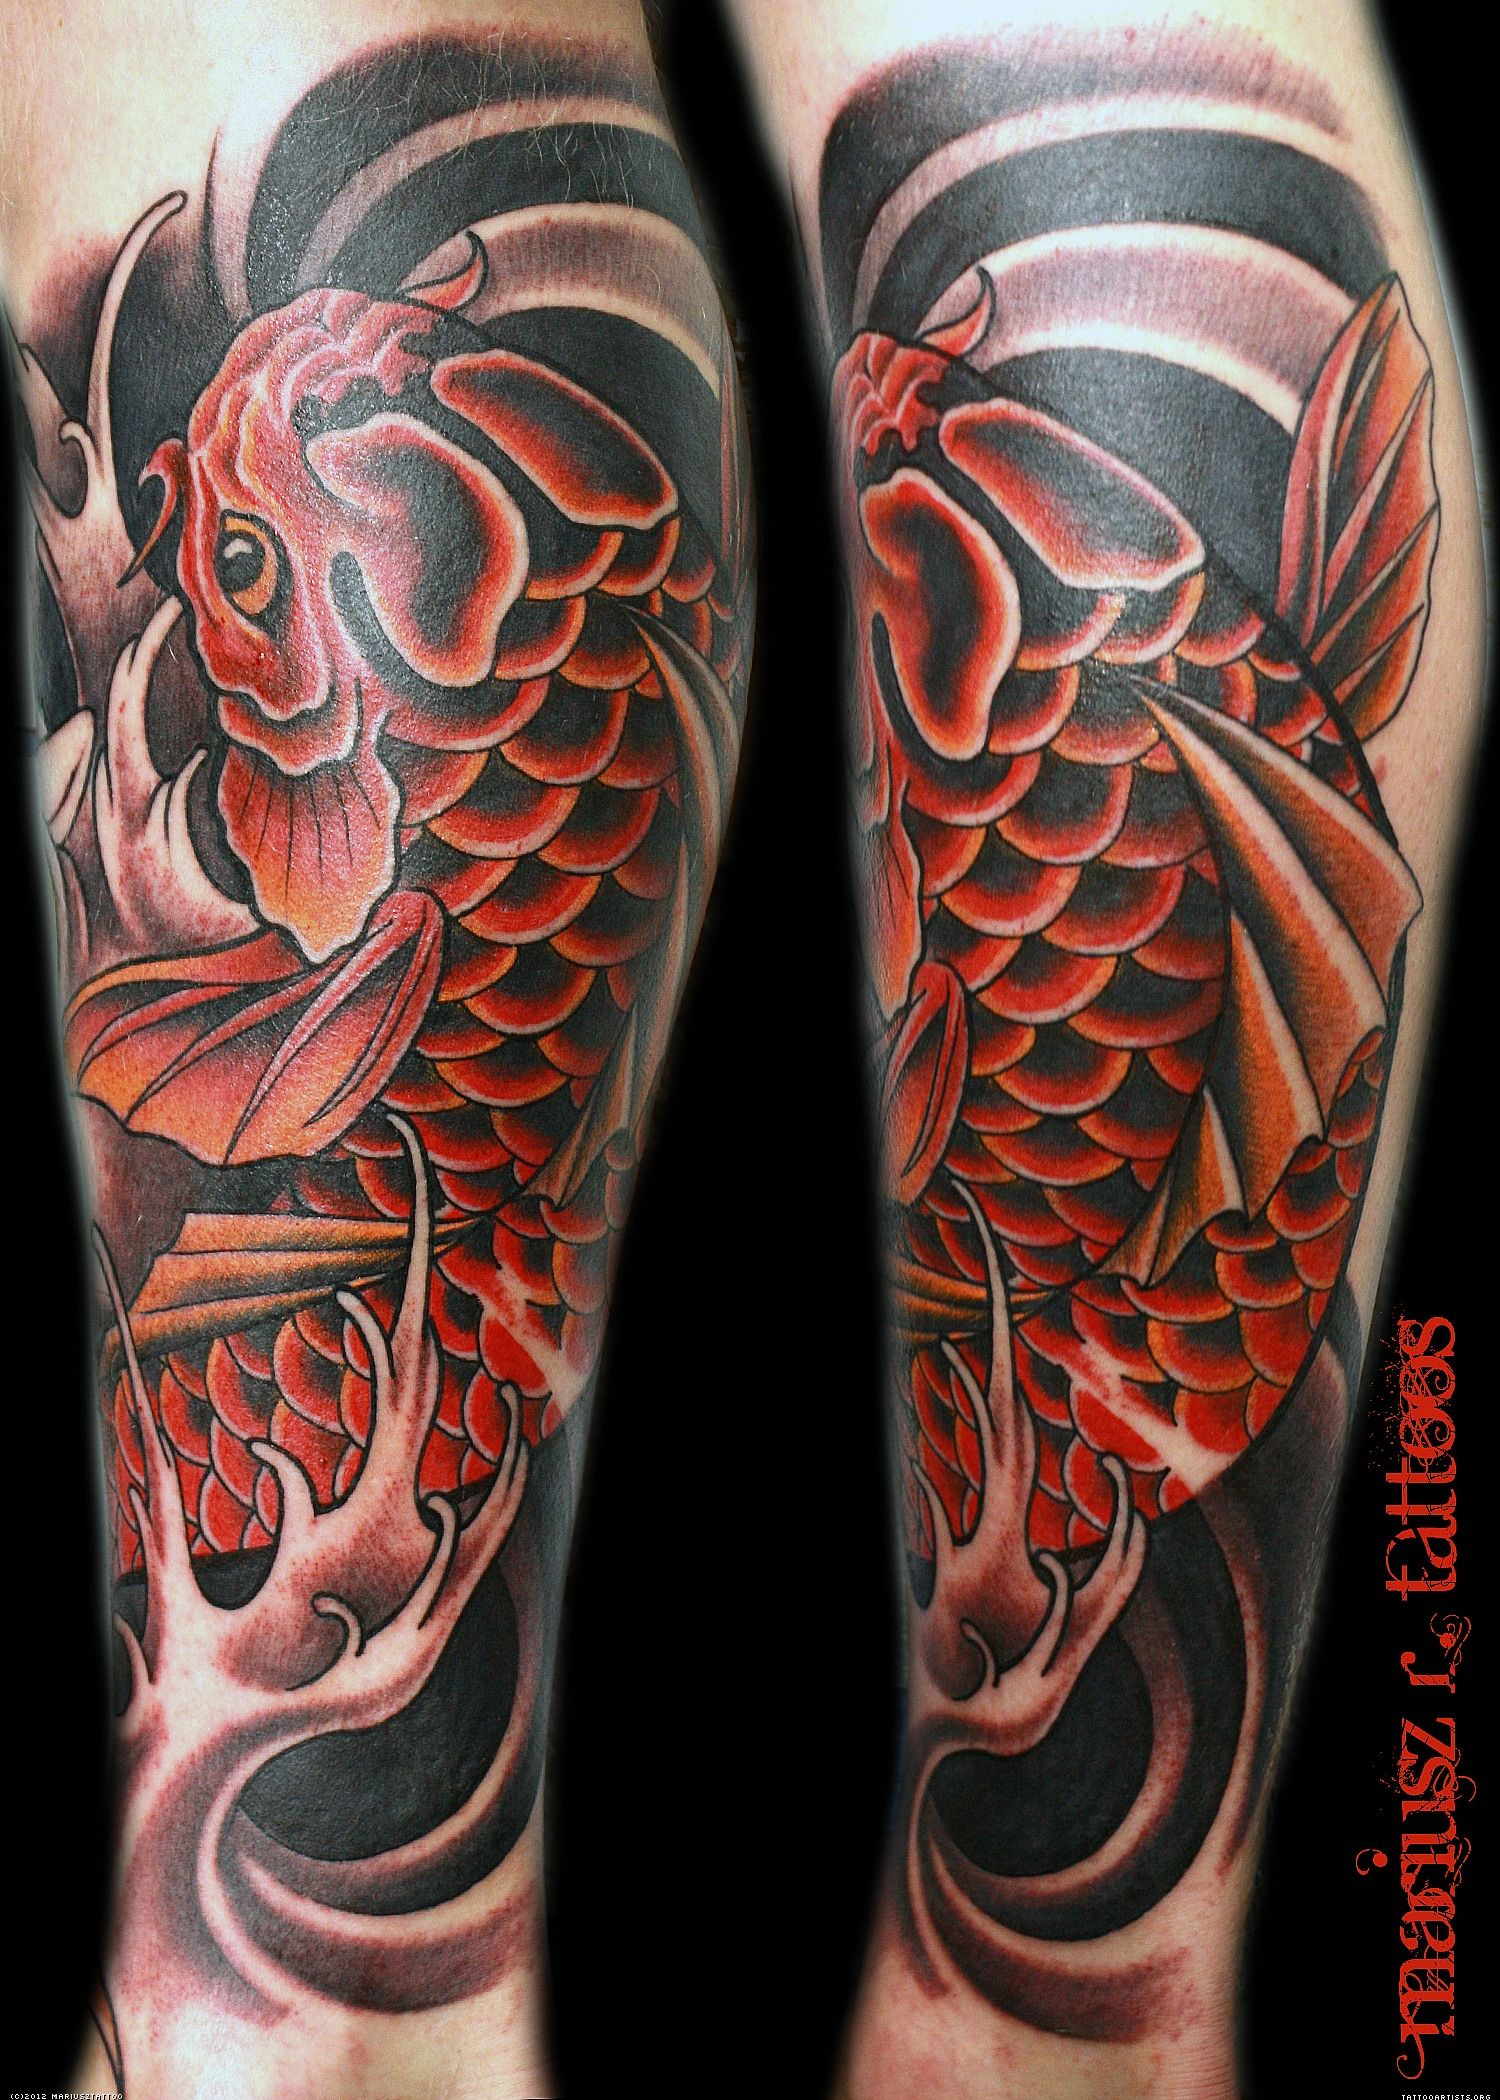 Red Koi Leg Tattoo Artists Org Koi Tattoo Design Koi Tattoo